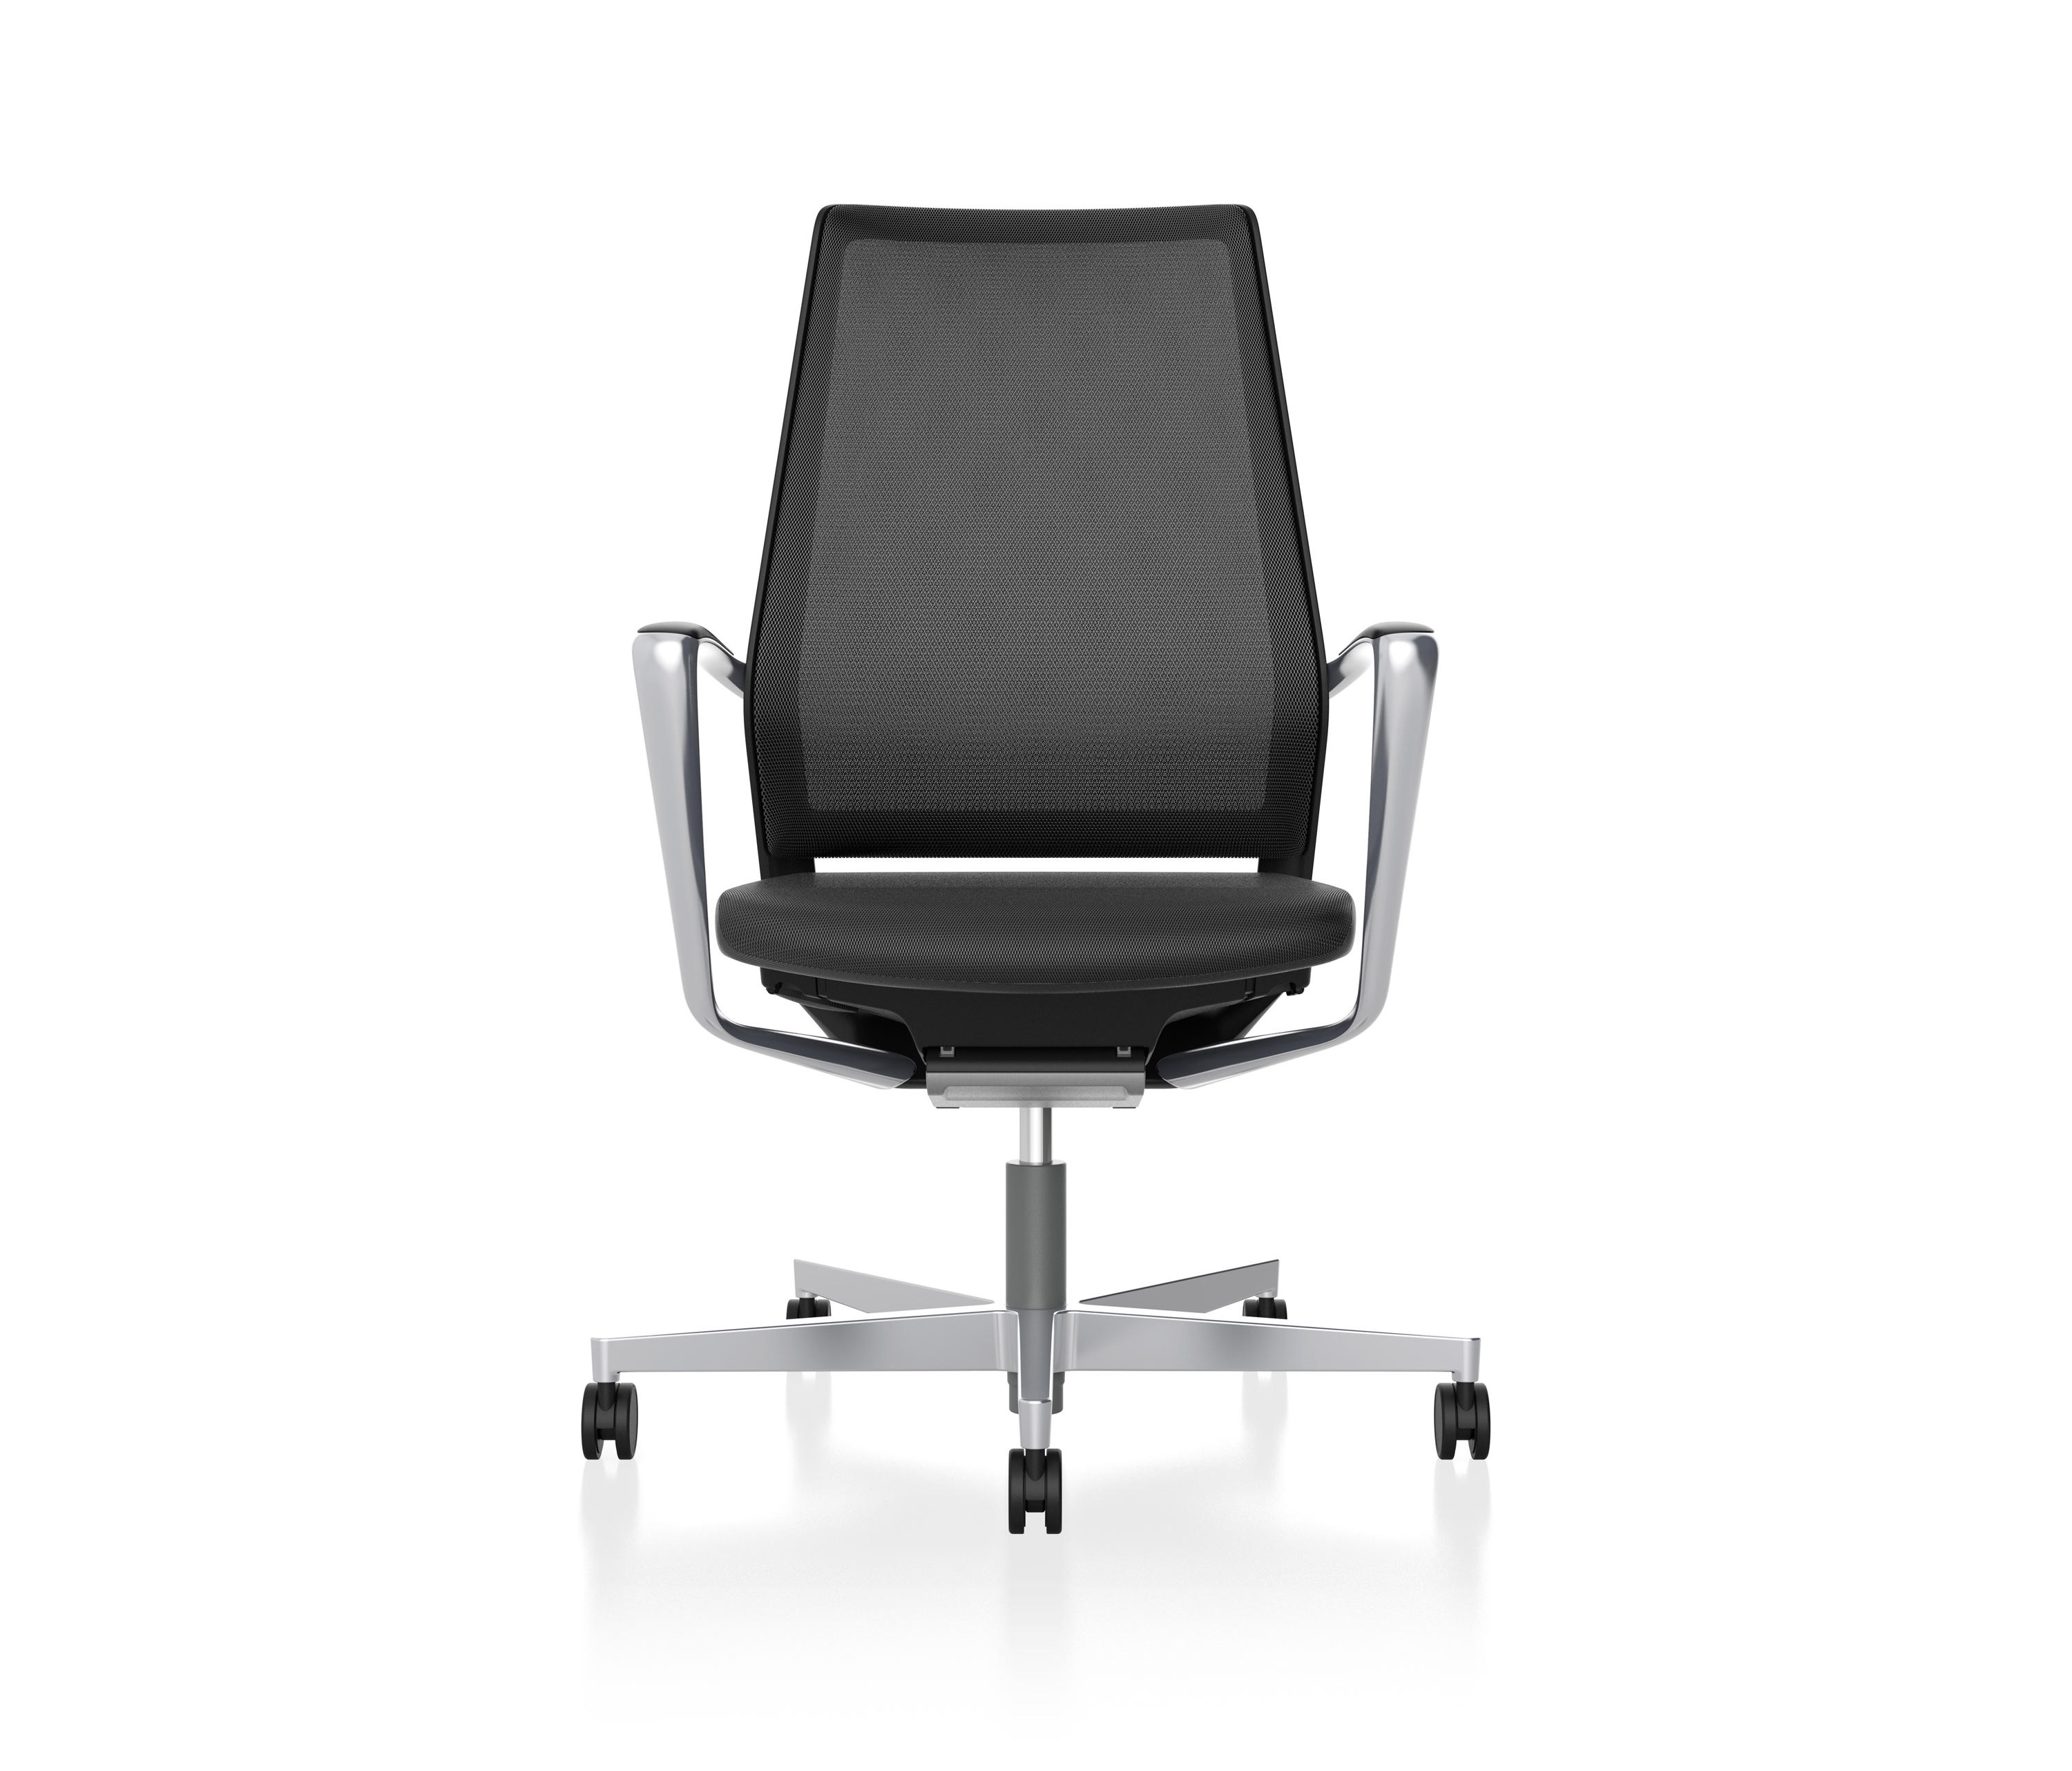 6012/3 SÃO PAULO - Task chairs from Kusch+Co | Architonic